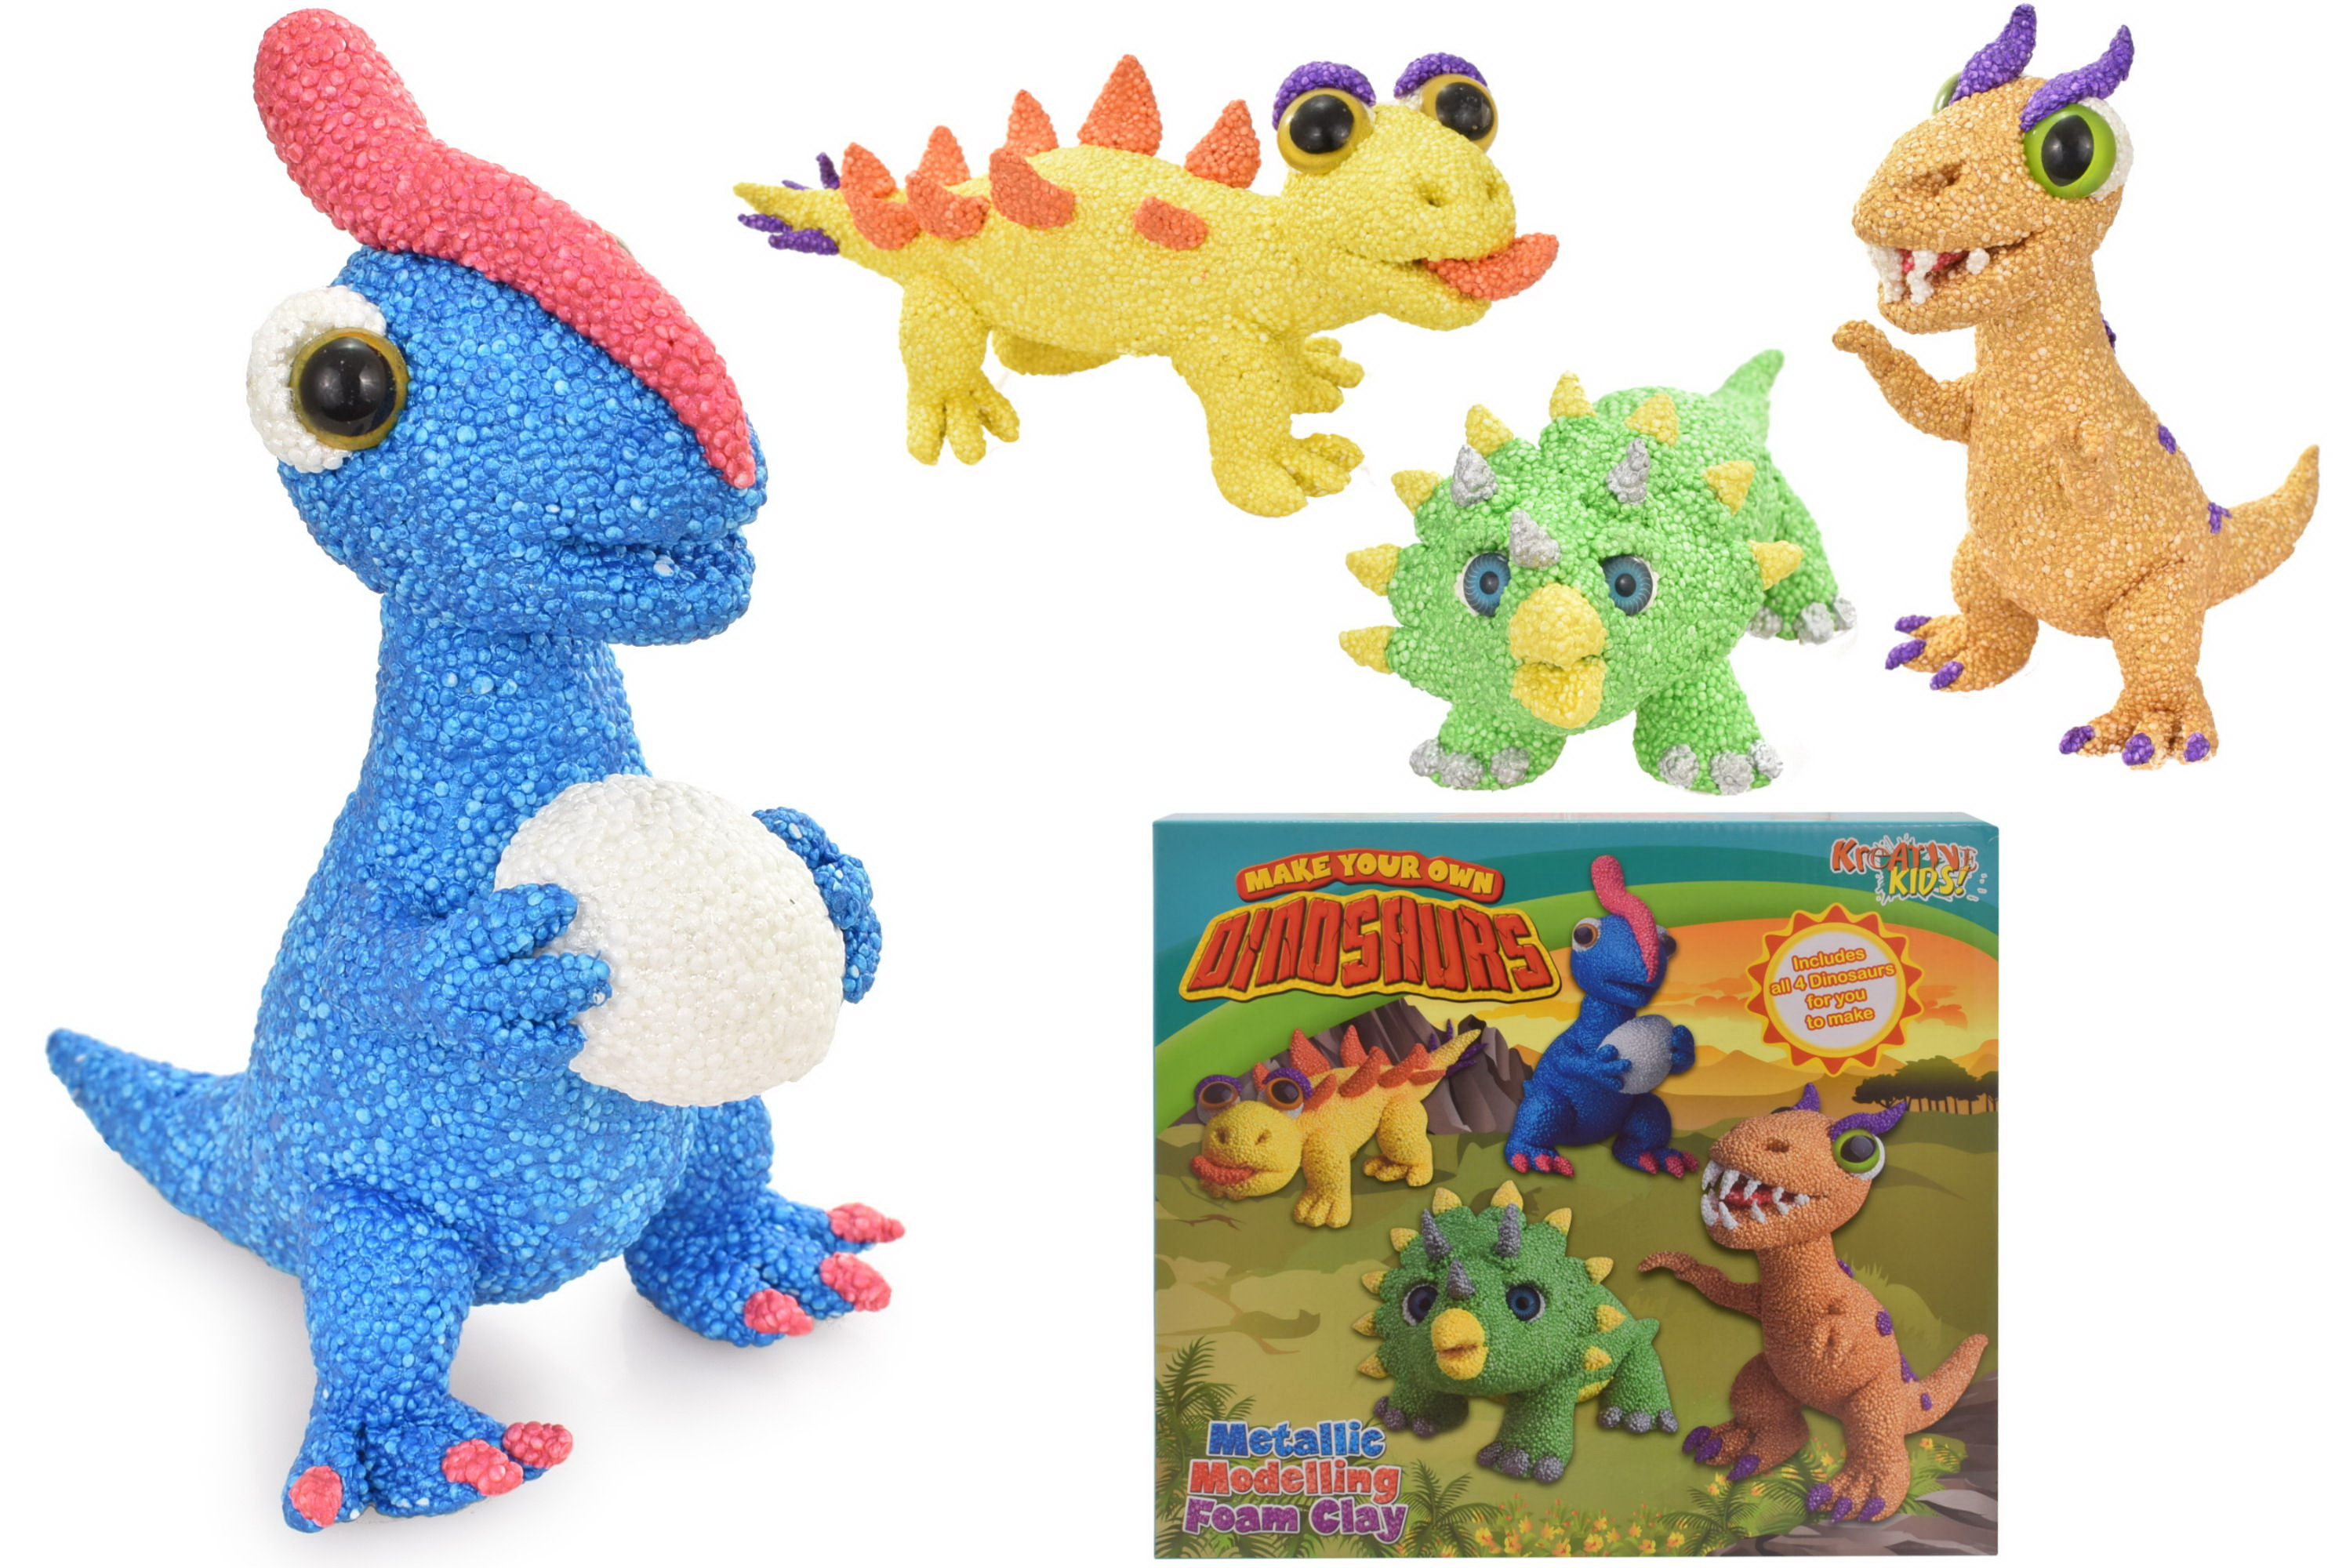 Metallic Modelling Foam Dinosaurs 4 In 1